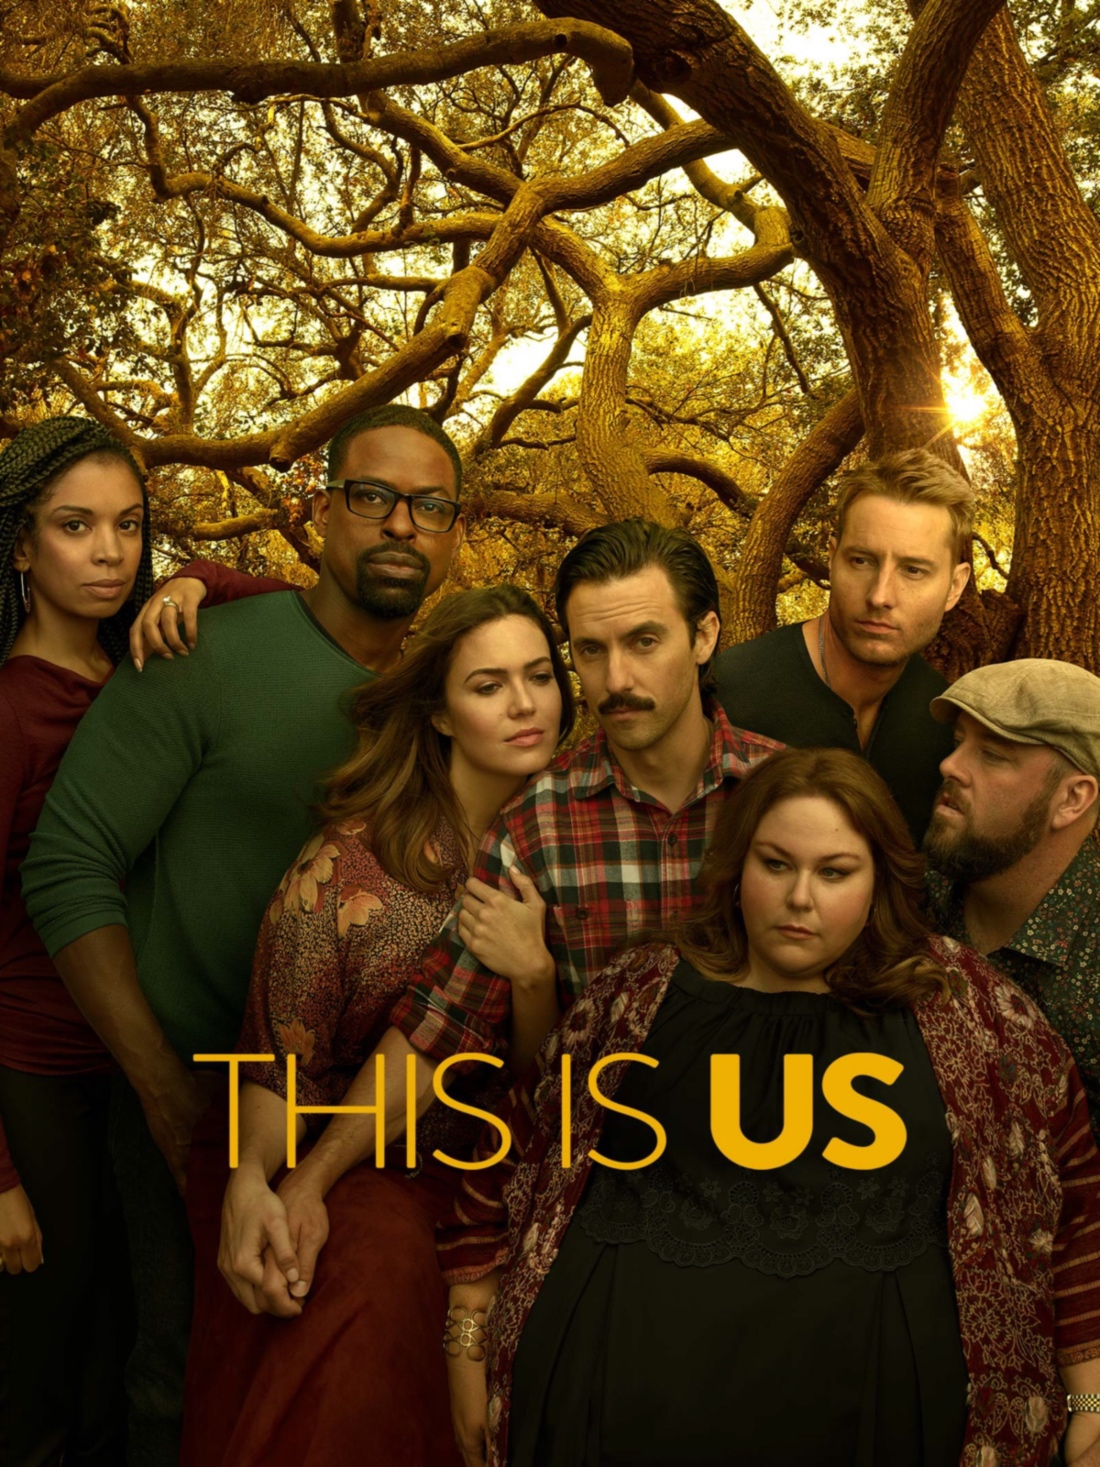 33 - This Is Us